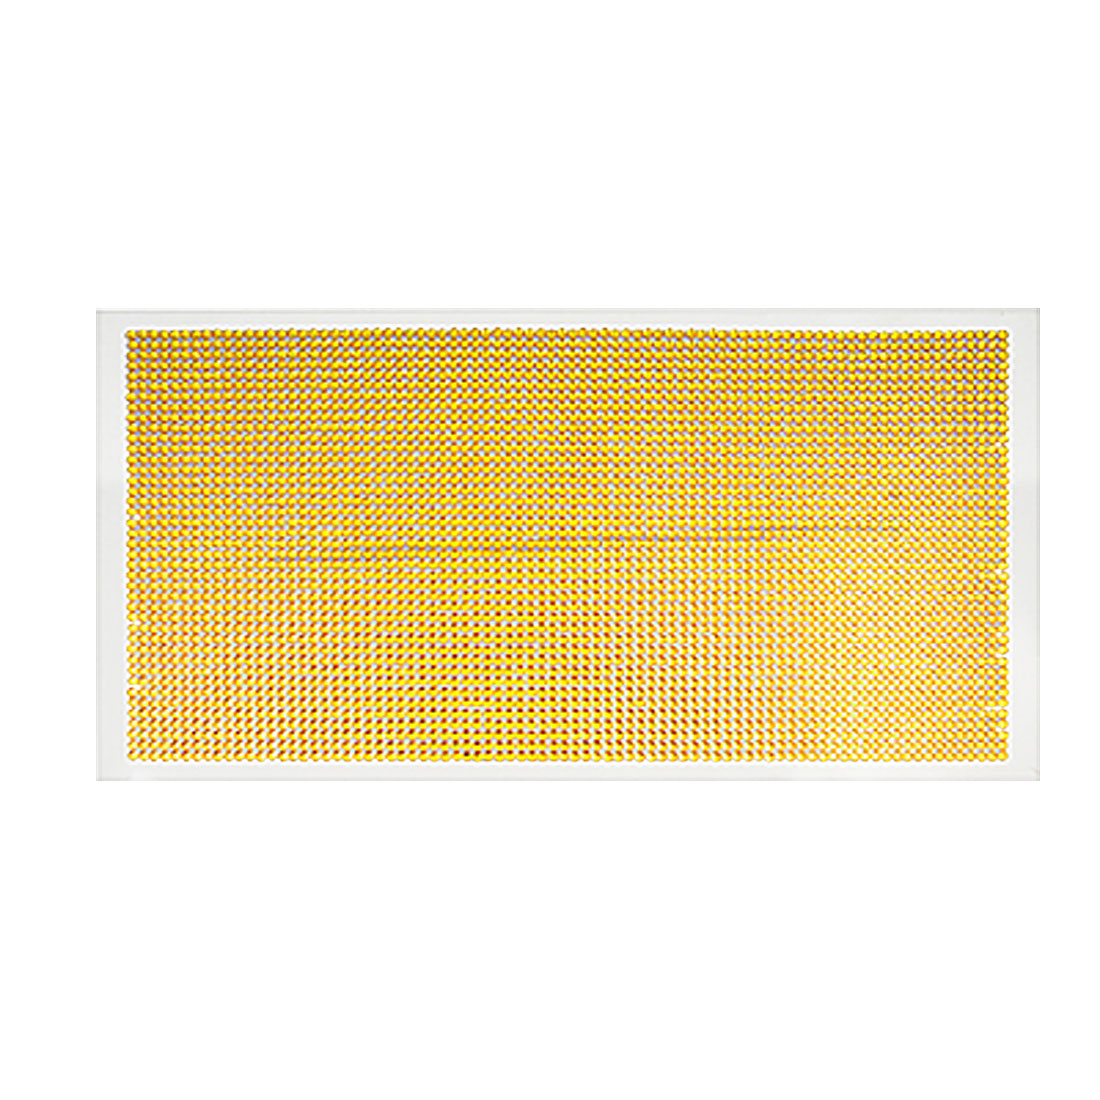 Glittery Yellow Plastic Crystal Self Adhsive Sticker Sheet for Car